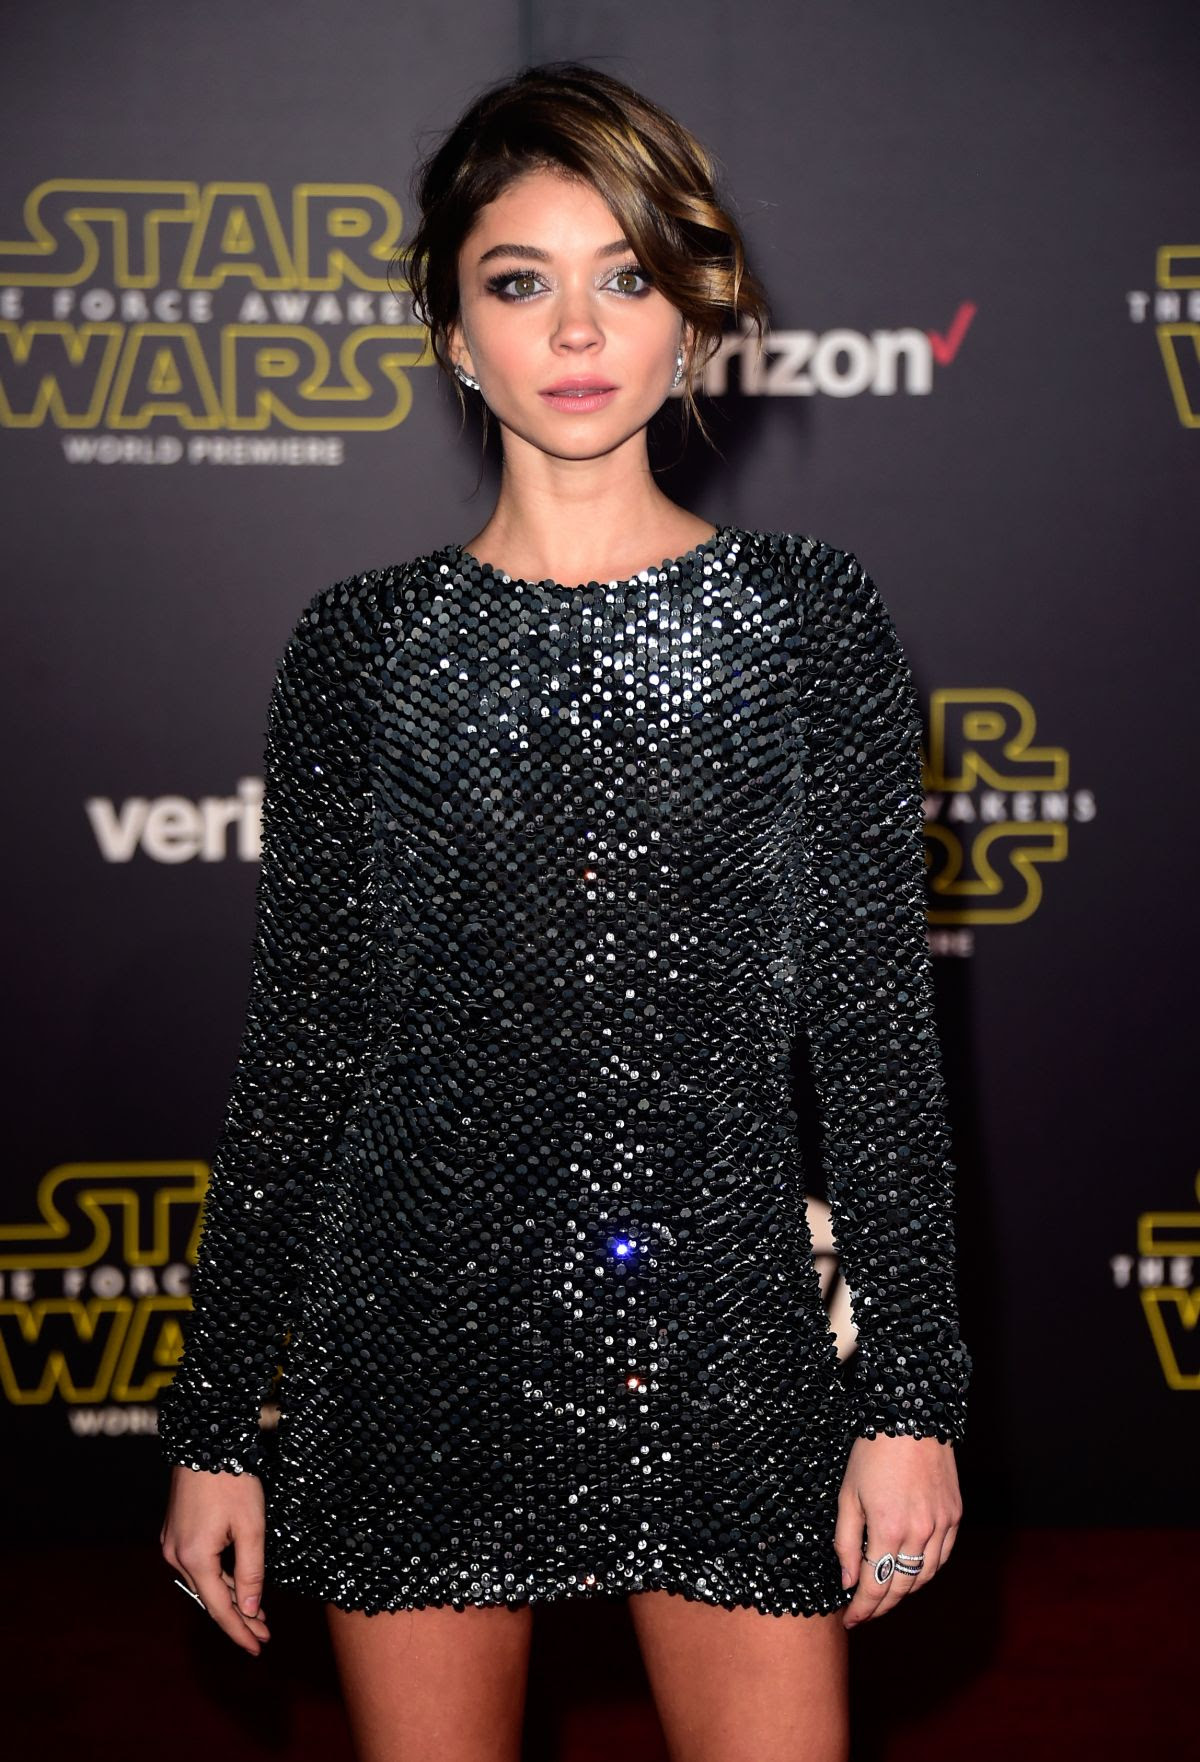 SARAH HYLAND at Star Wars: Episode VII – The Force Awakens Premiere in Hollywood 12/14/2015